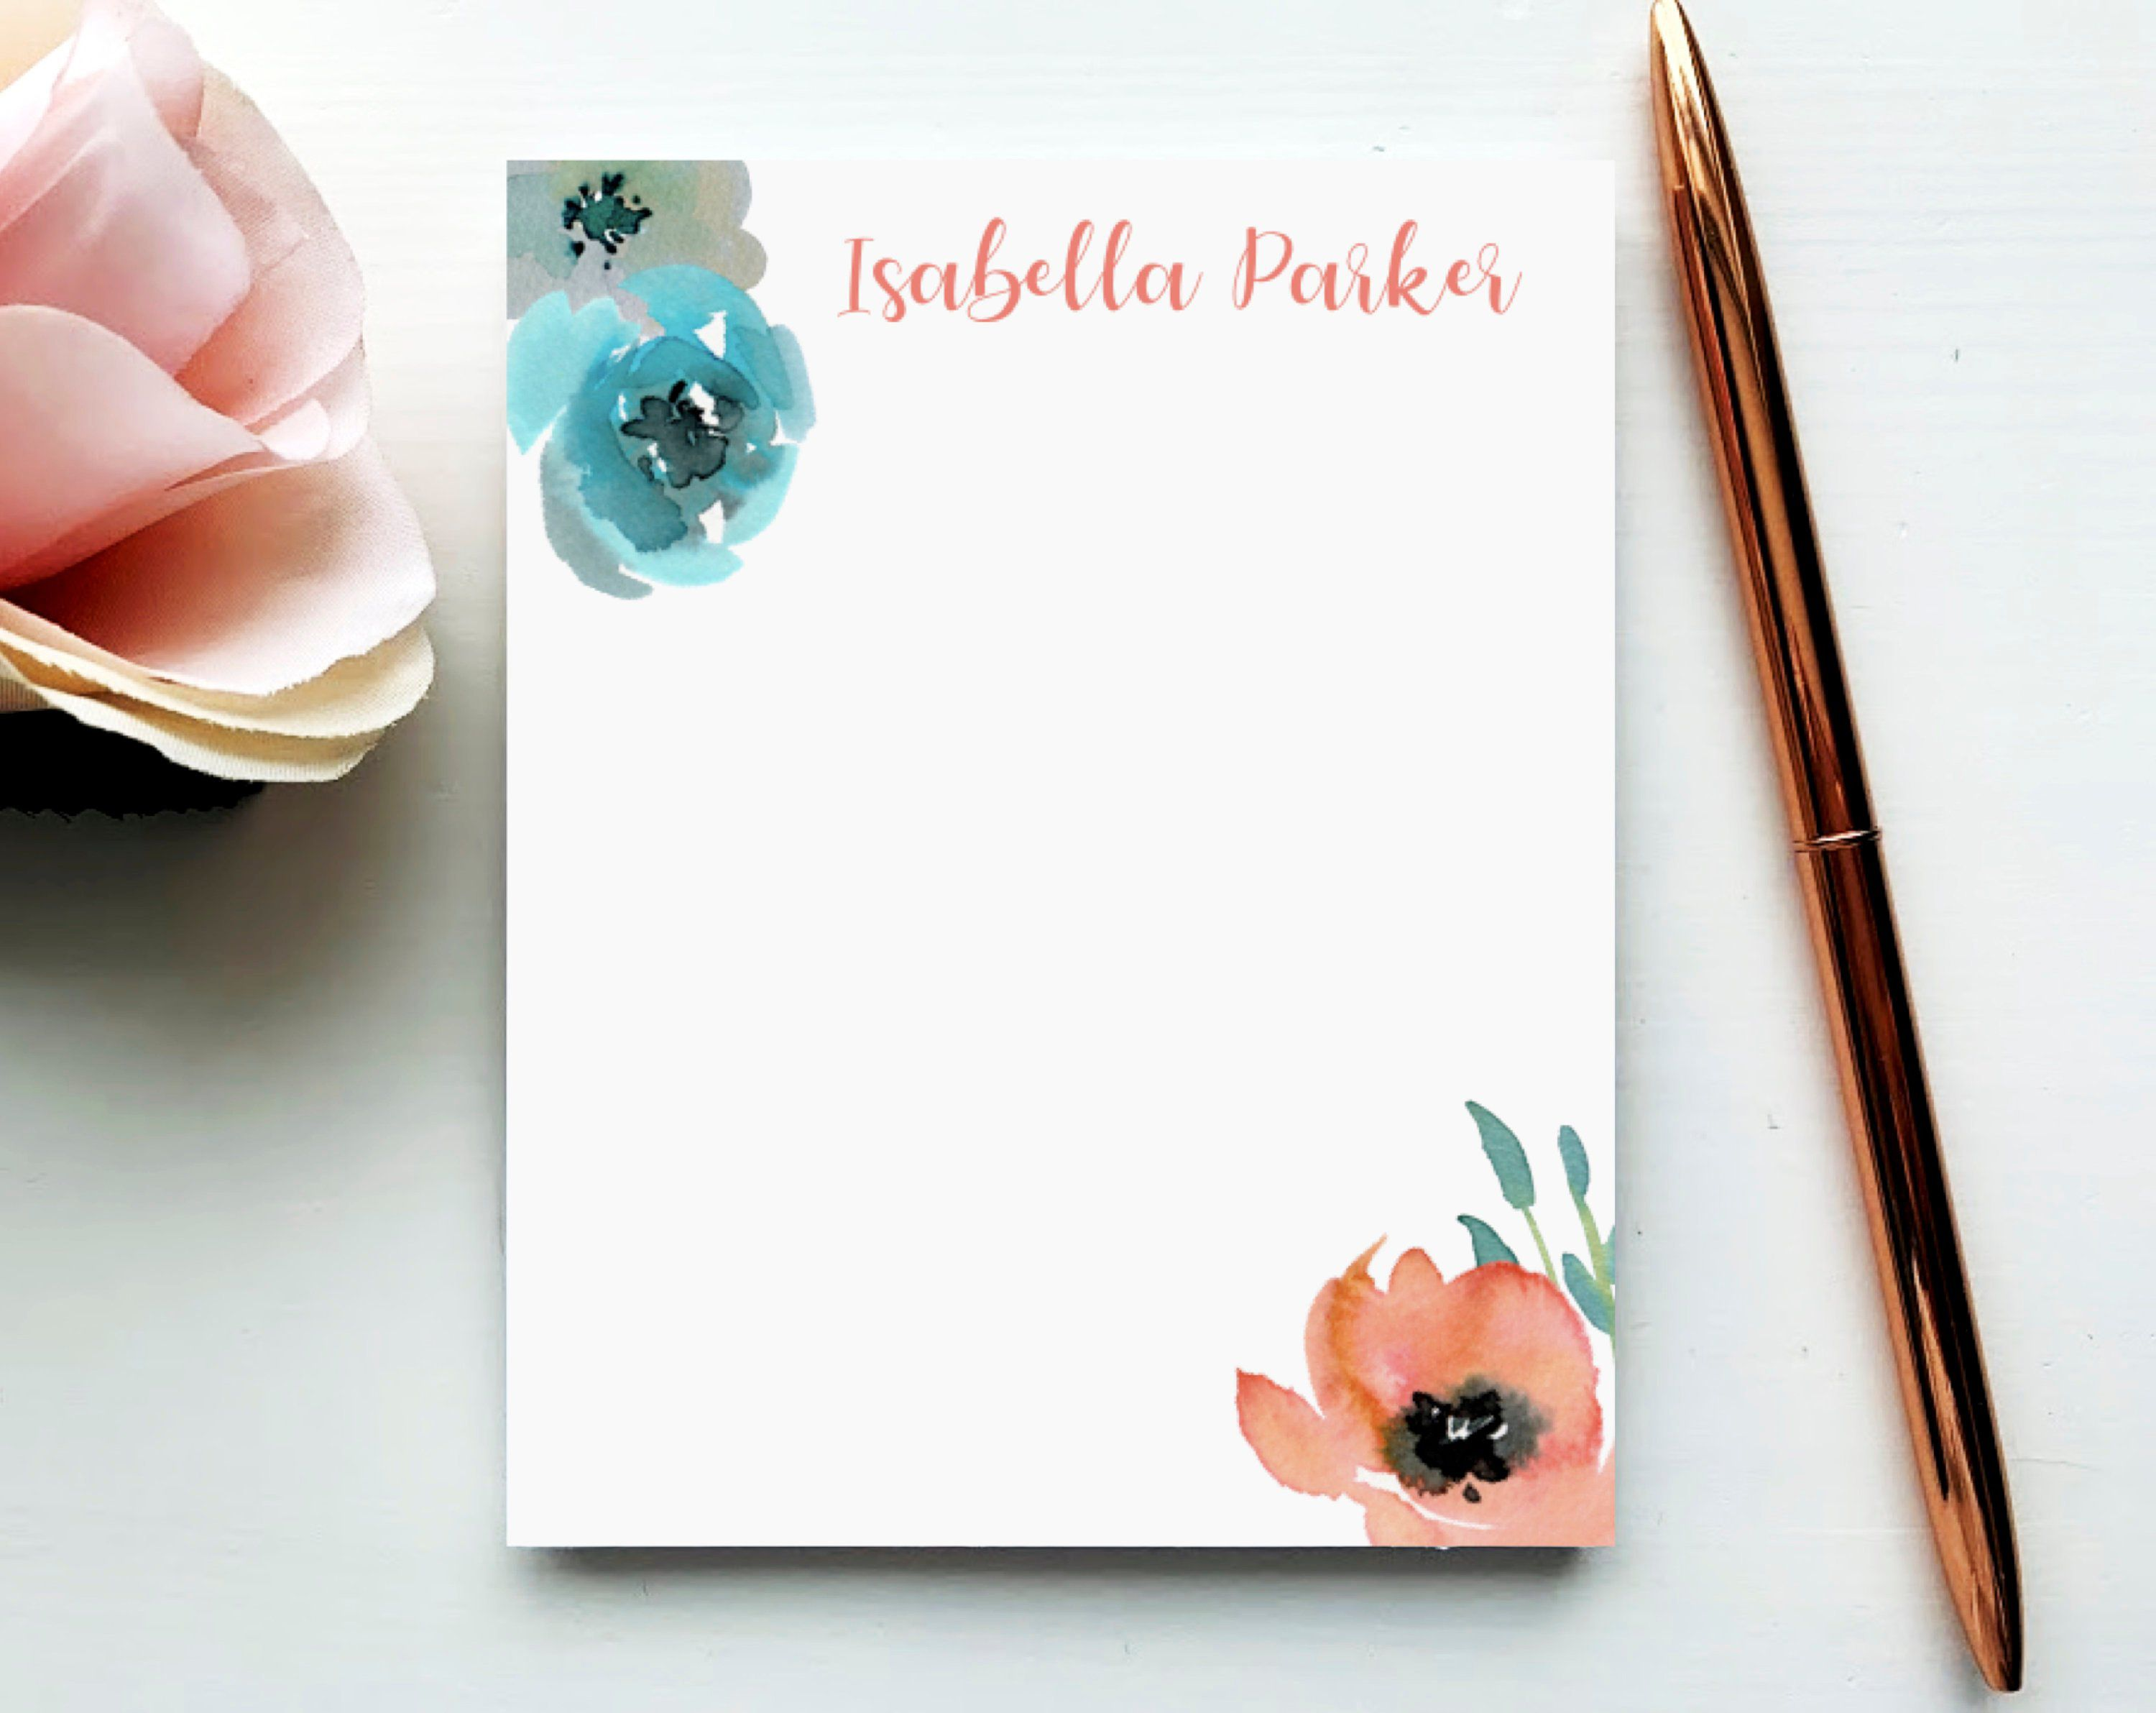 PAINTED FLORALS II NOTEPAD Personalized Flower Stationery//Stationary 5x7 or 8x10 Note Pad